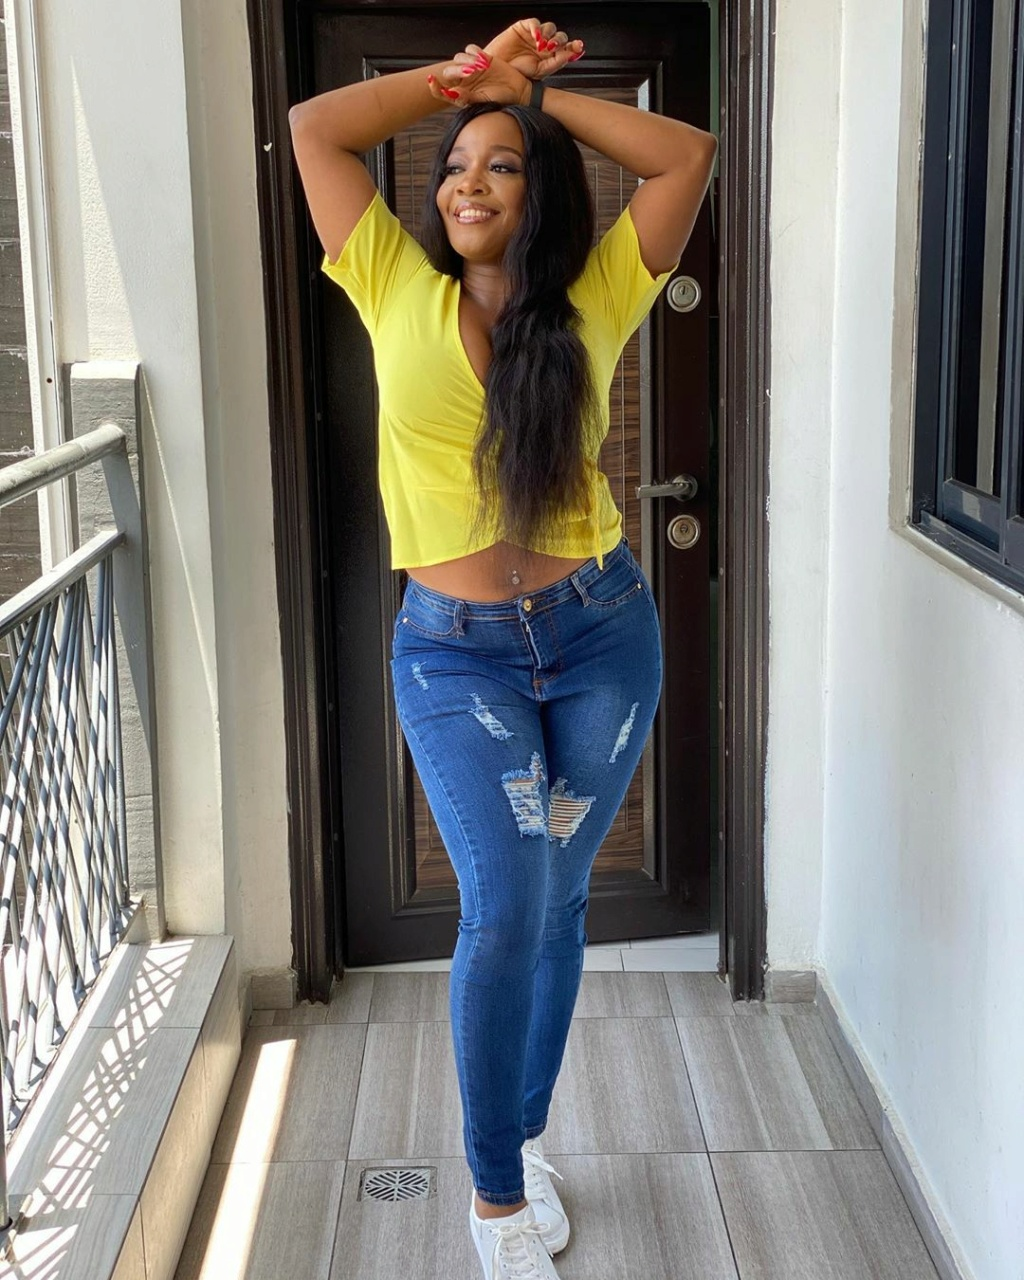 I'm Not Going To Impress Anyone At The Cost Of My Happiness – BBNaija's Lucy Warns Lucyed10